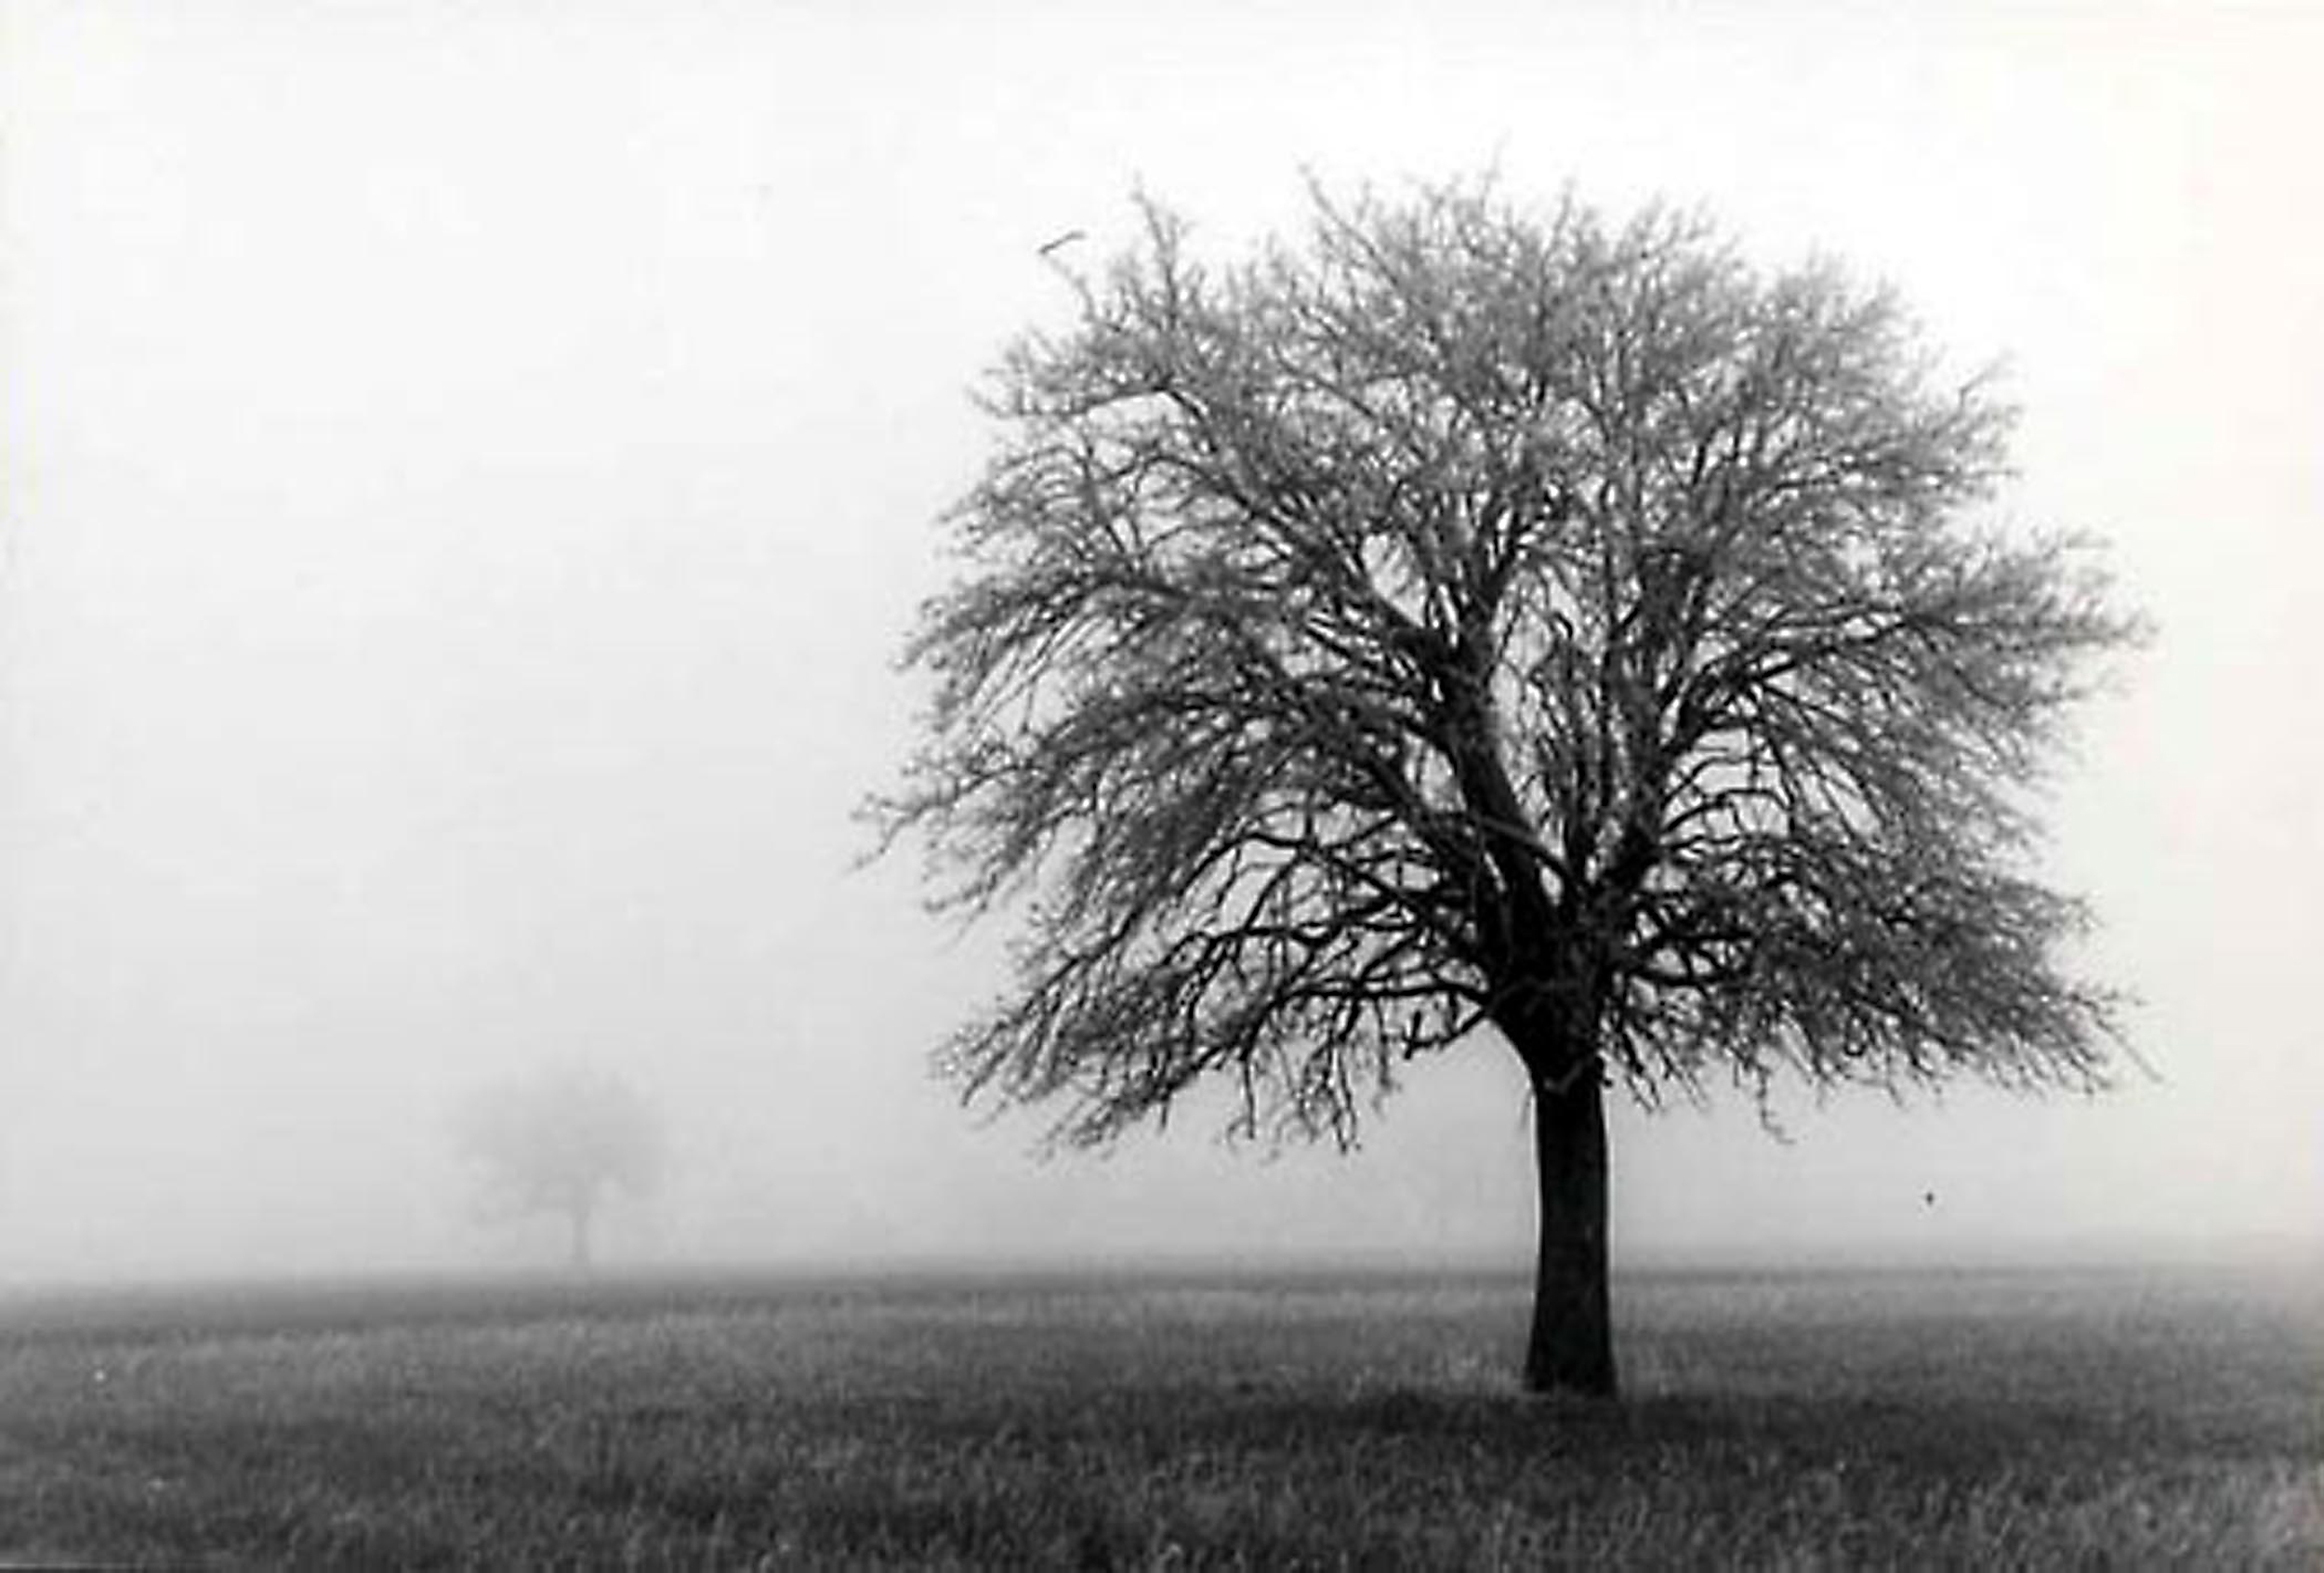 HANNON_two_trees_in_fog_(france)_1956_11x14_high.jpg